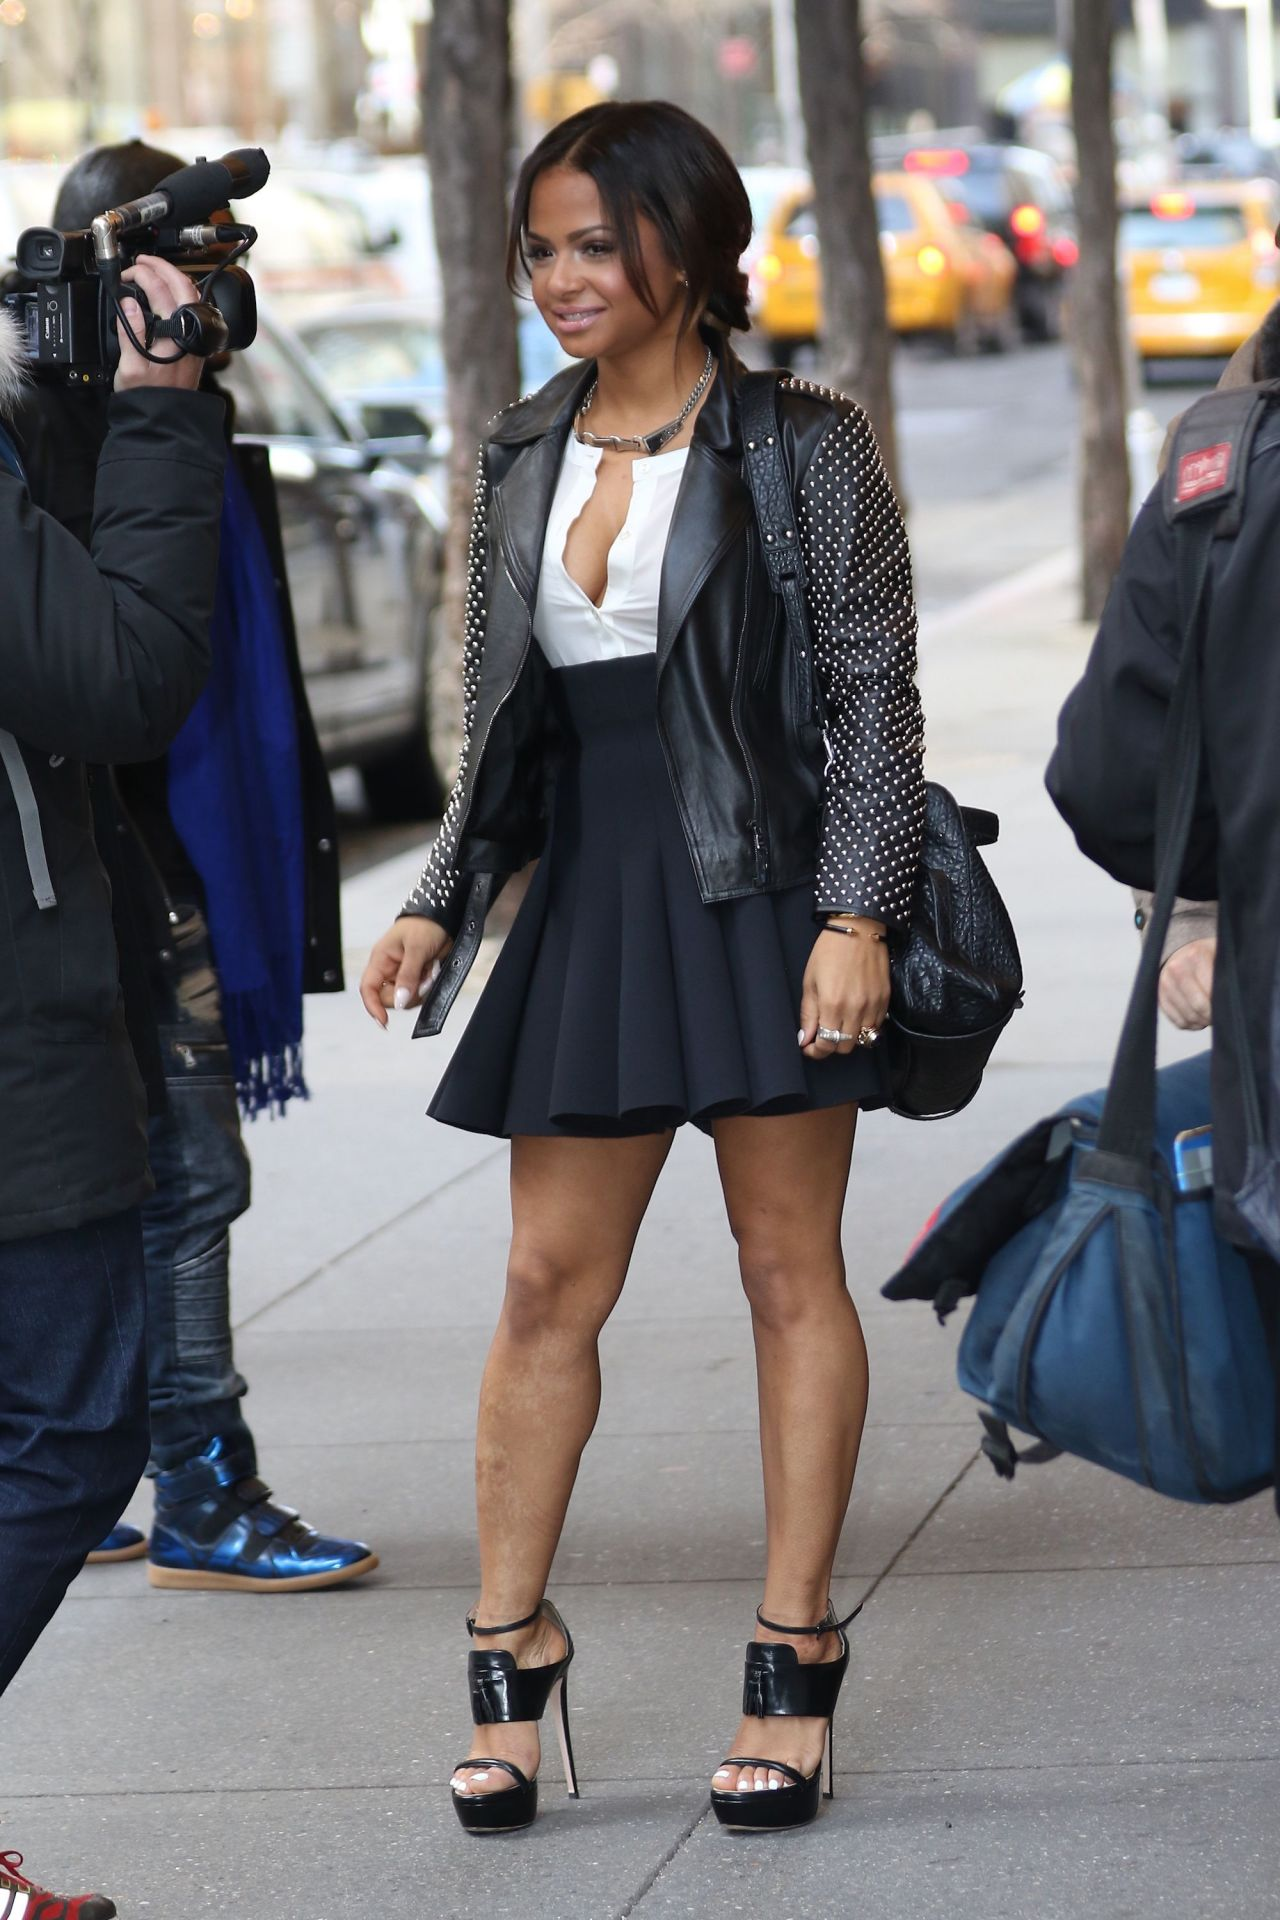 Christina Milian Shows Off Her Legs In Mini Skirt At Nbc